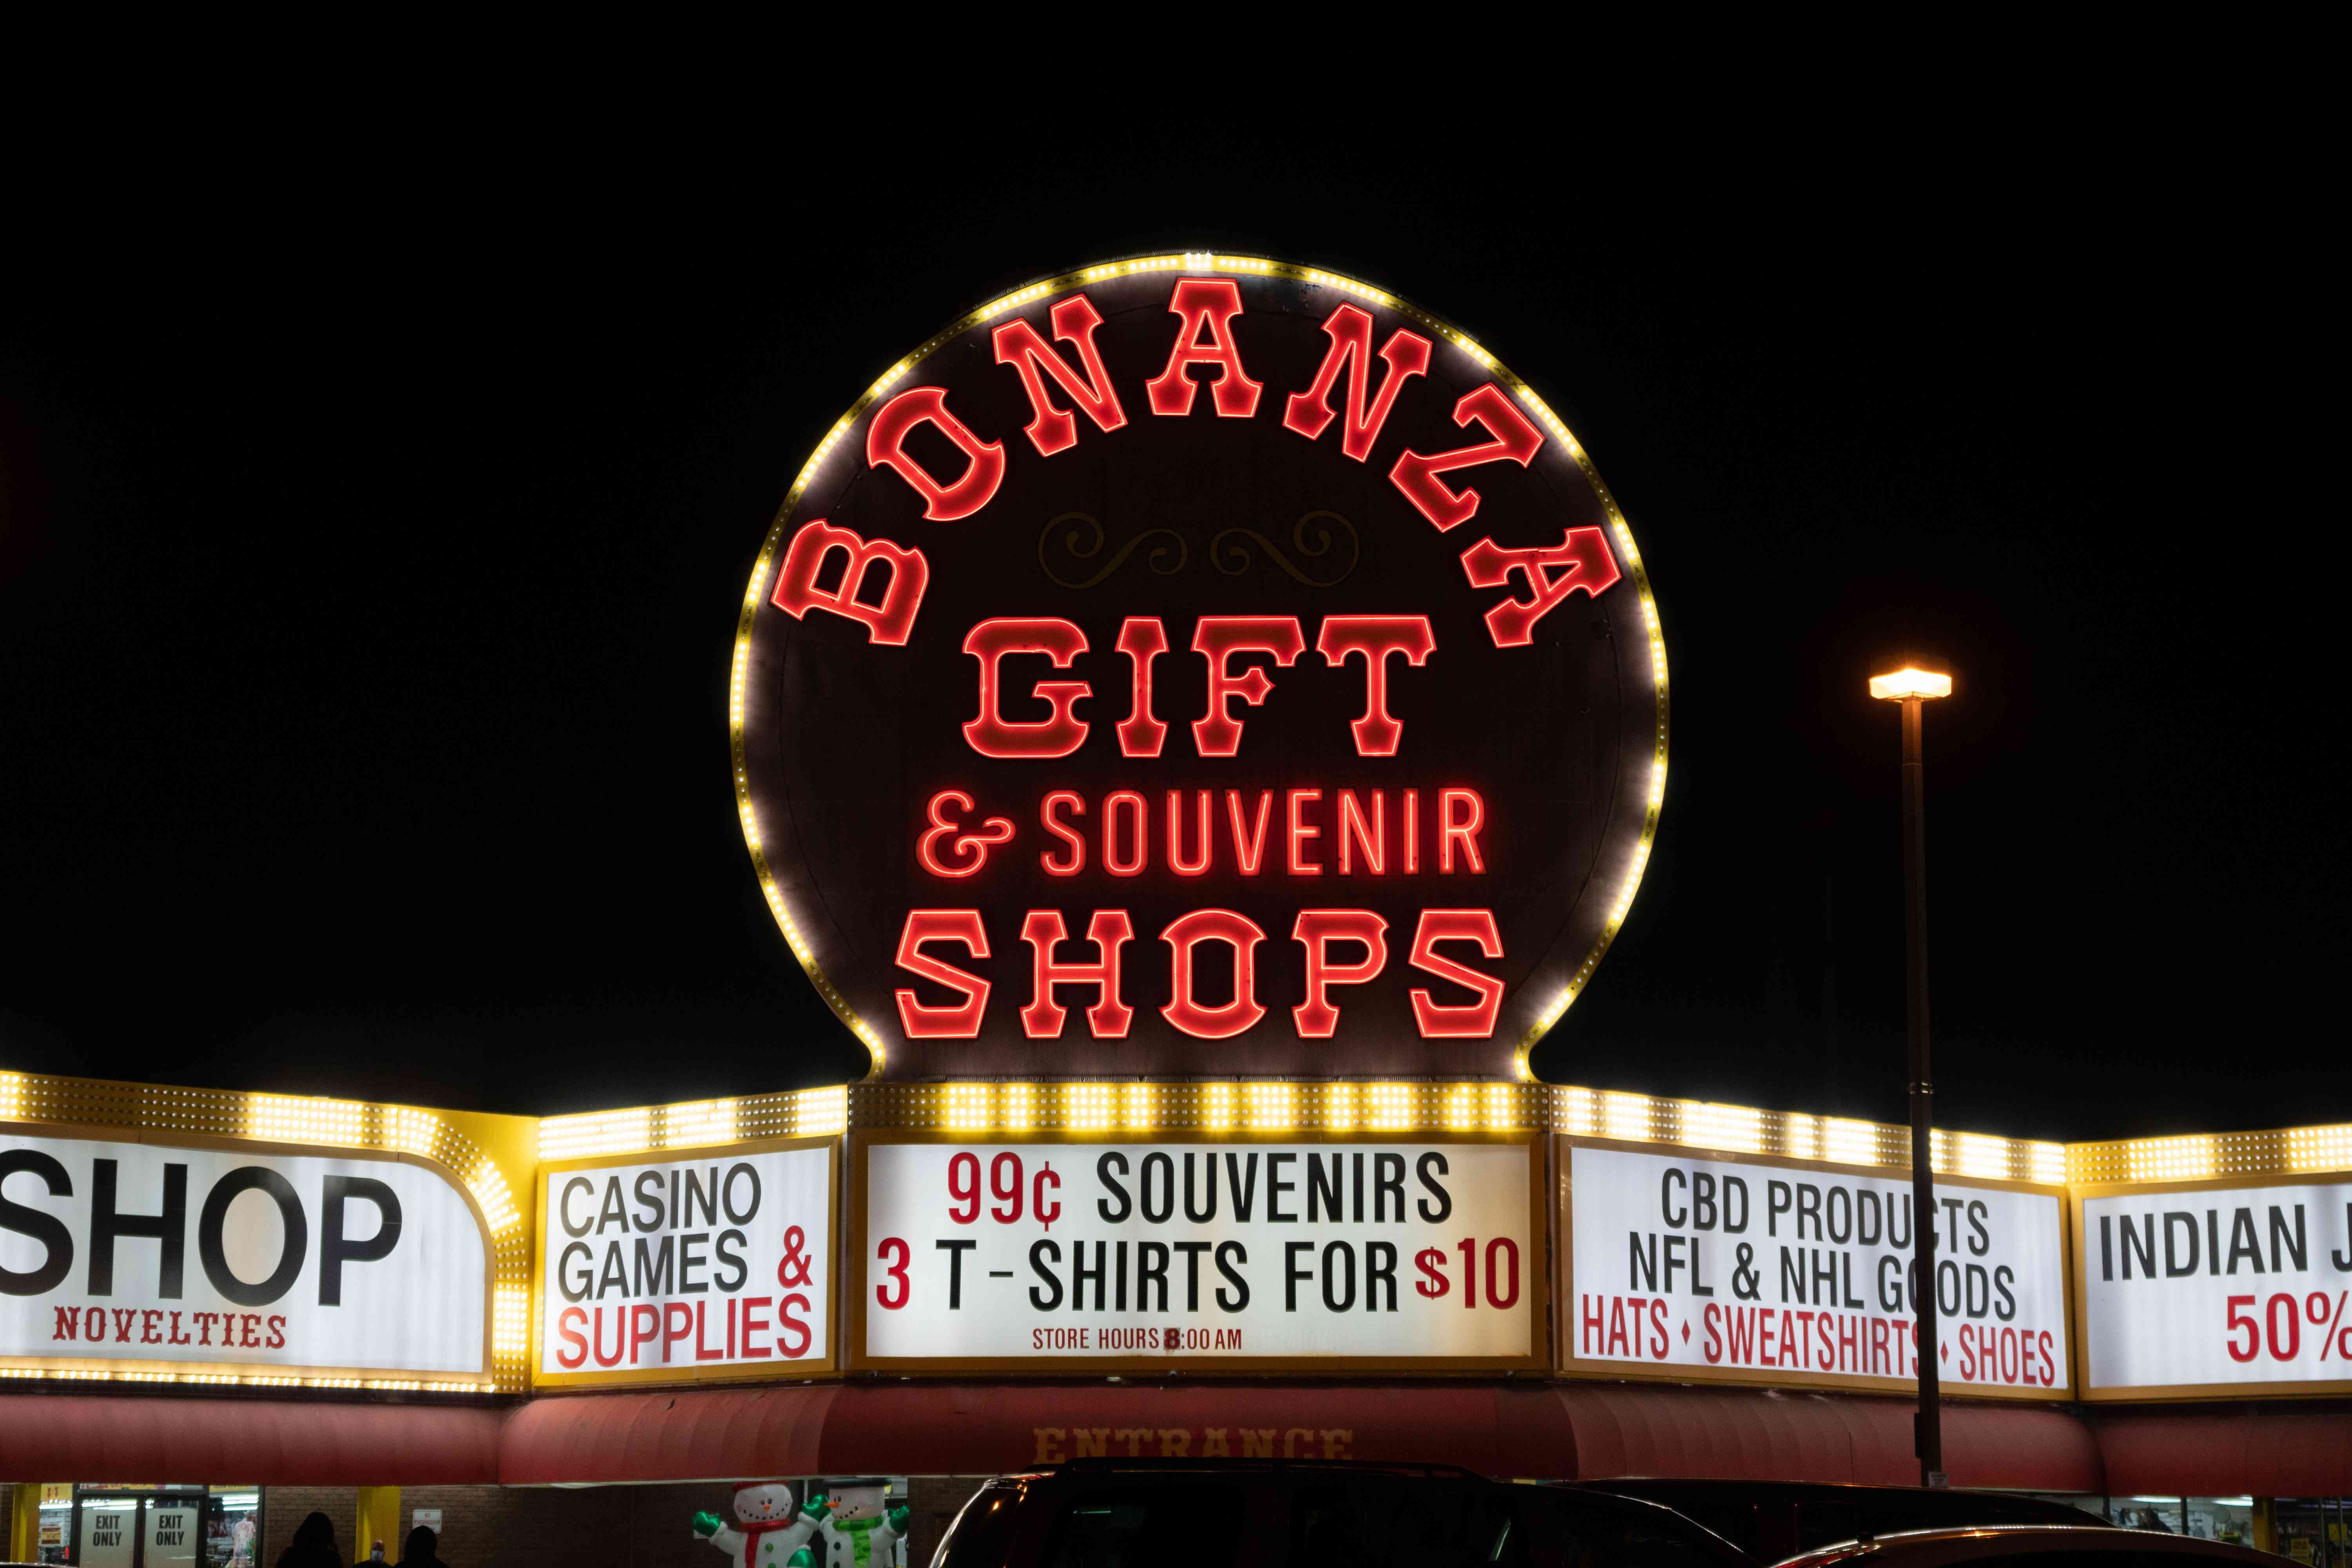 Neon sign for the Bonanza Gift Shop